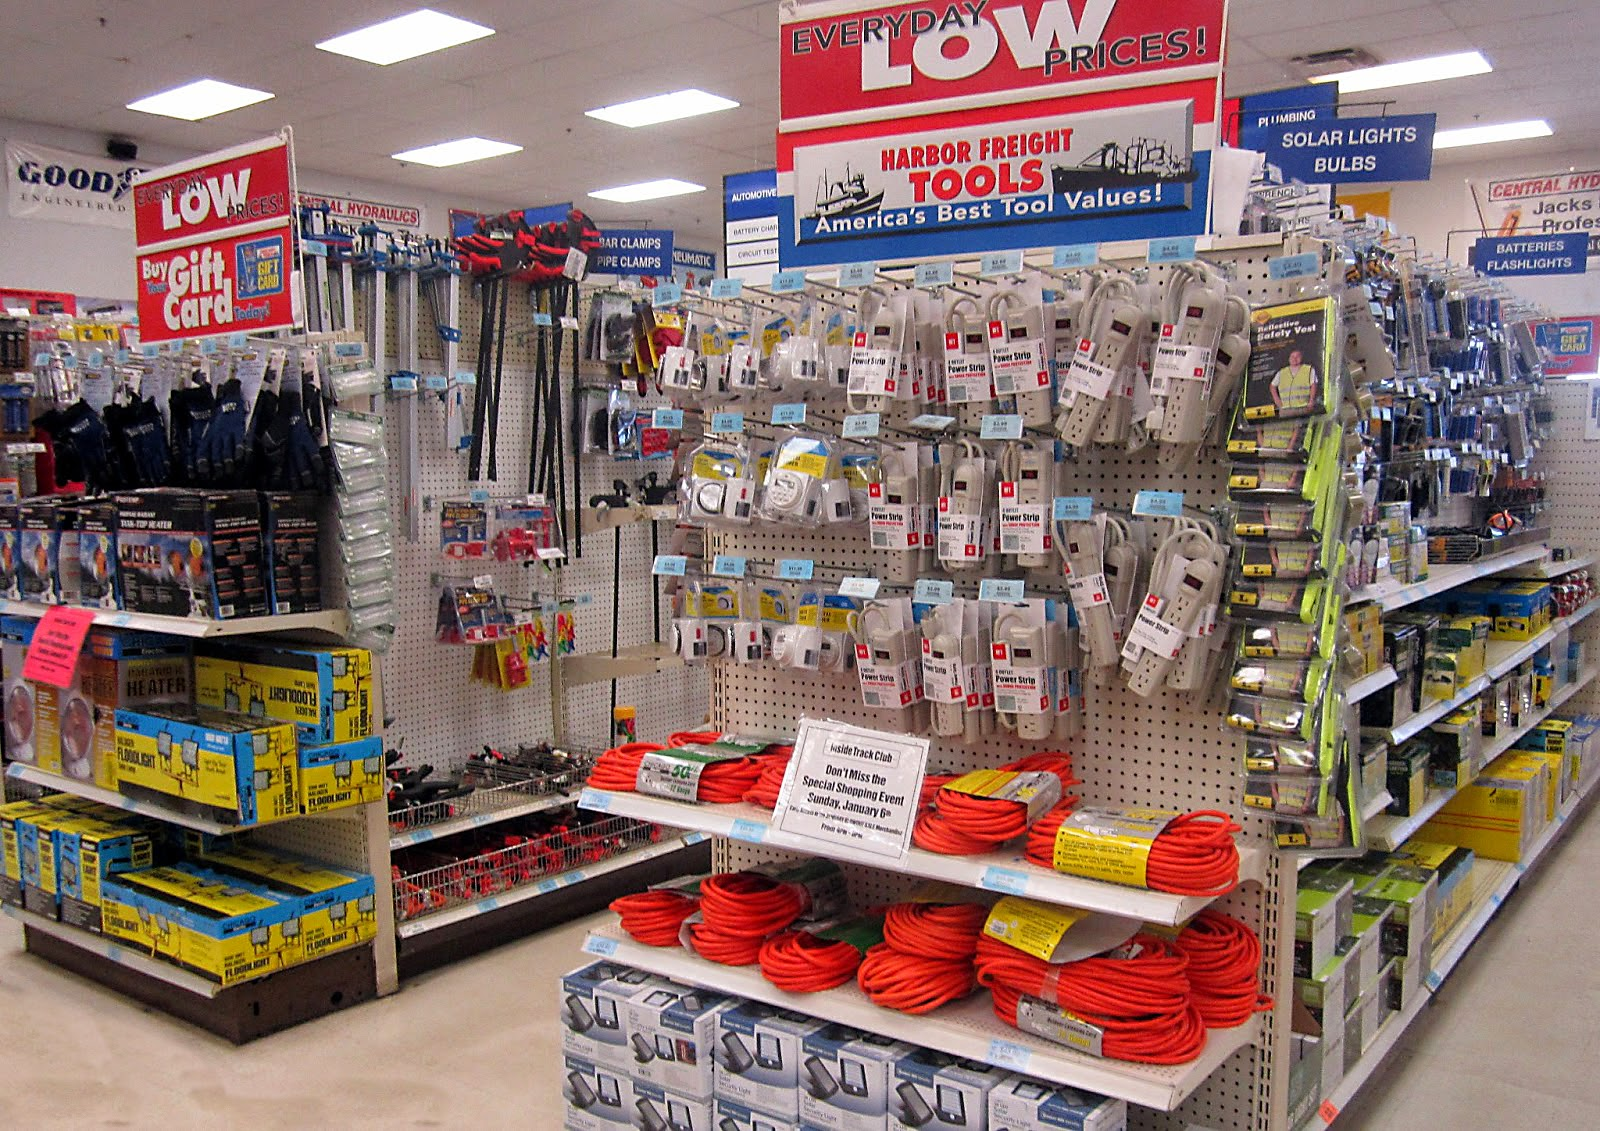 HARBOR+FREIGHT+TOOLS+STORE+Aisles,+Harbor+Freight+Store+Aisle